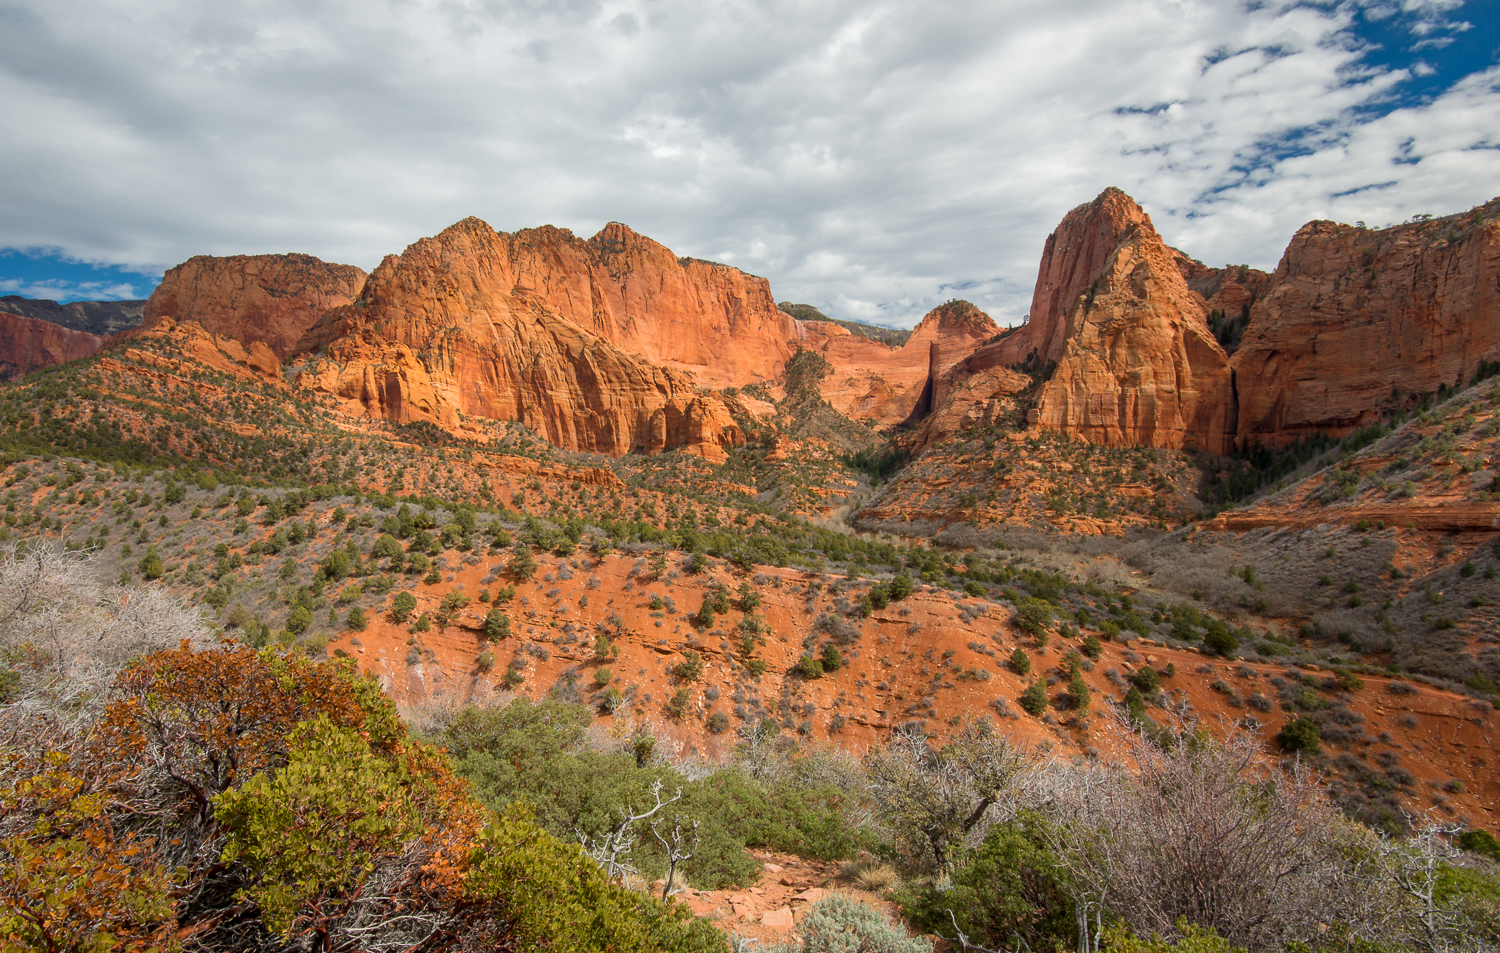 Overlook, Kolob Canyons